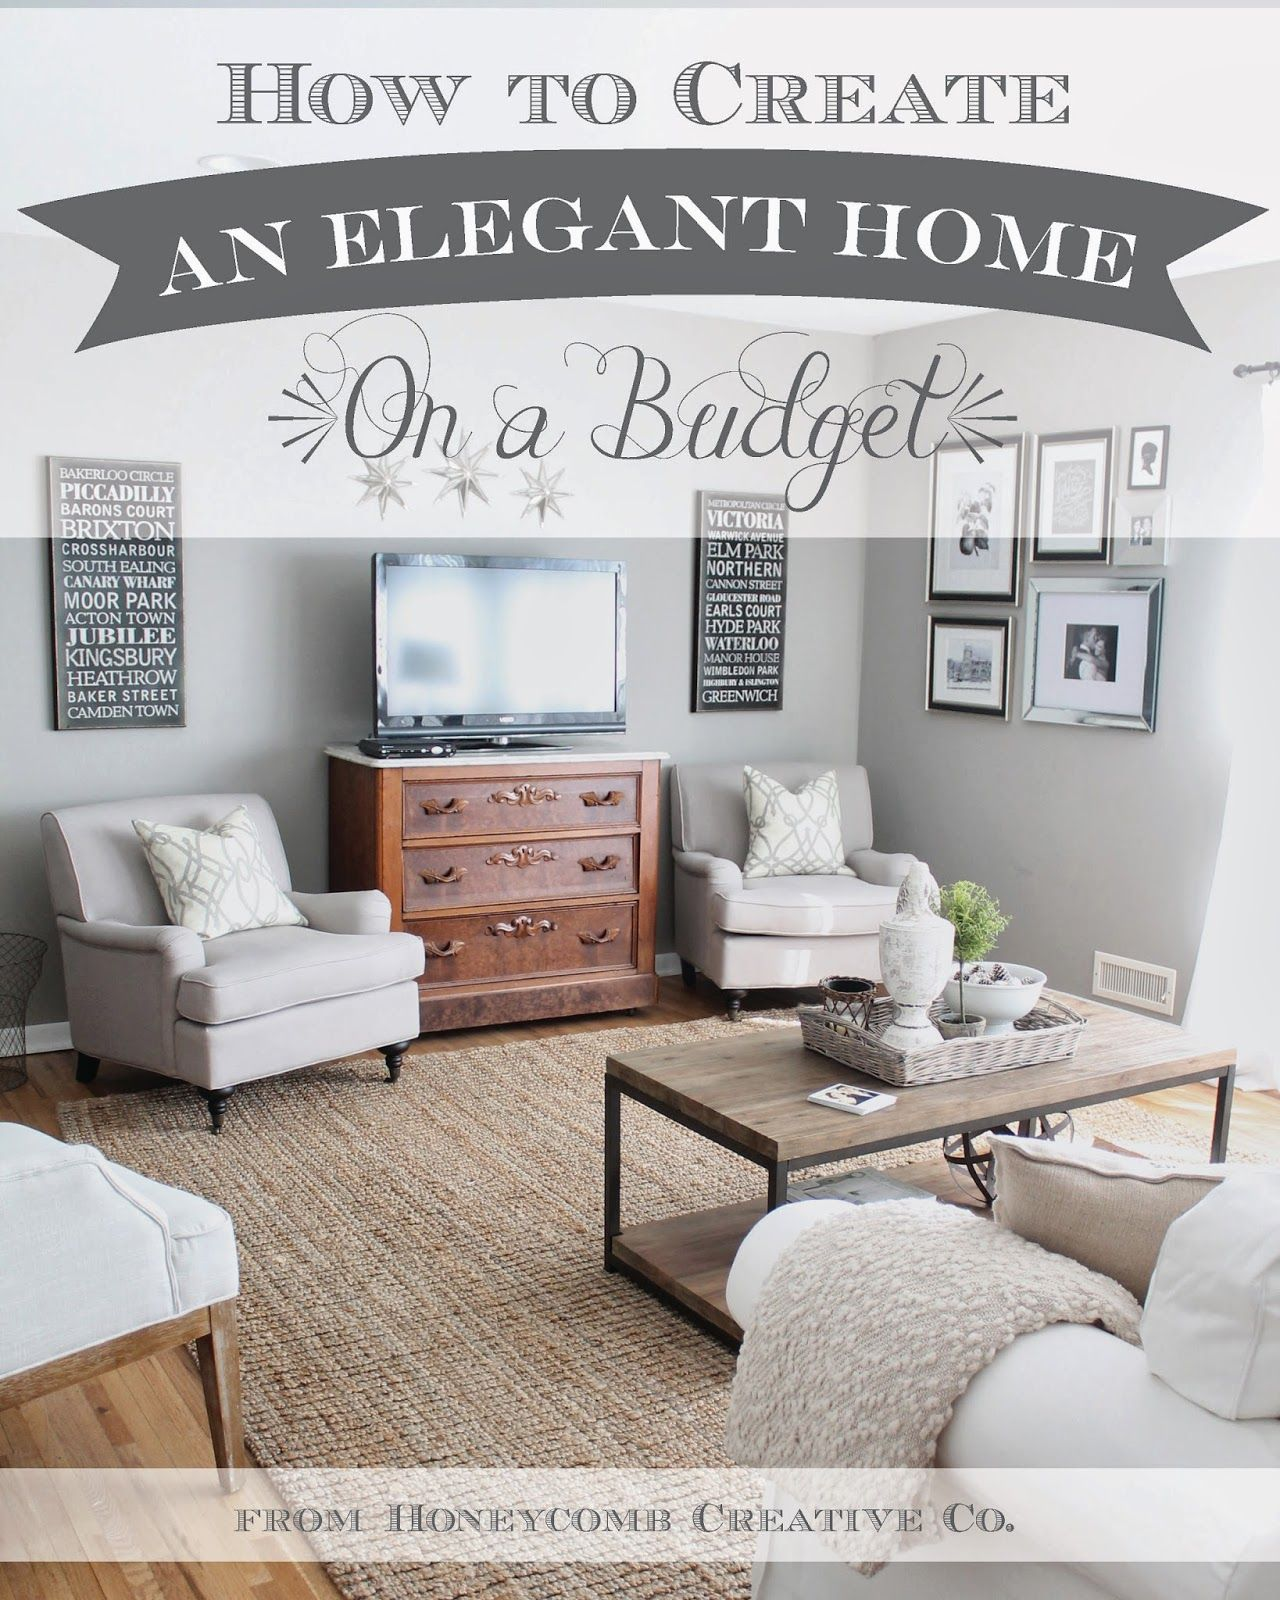 How To Create An Elegant Home On A Budget: 7 Tips And